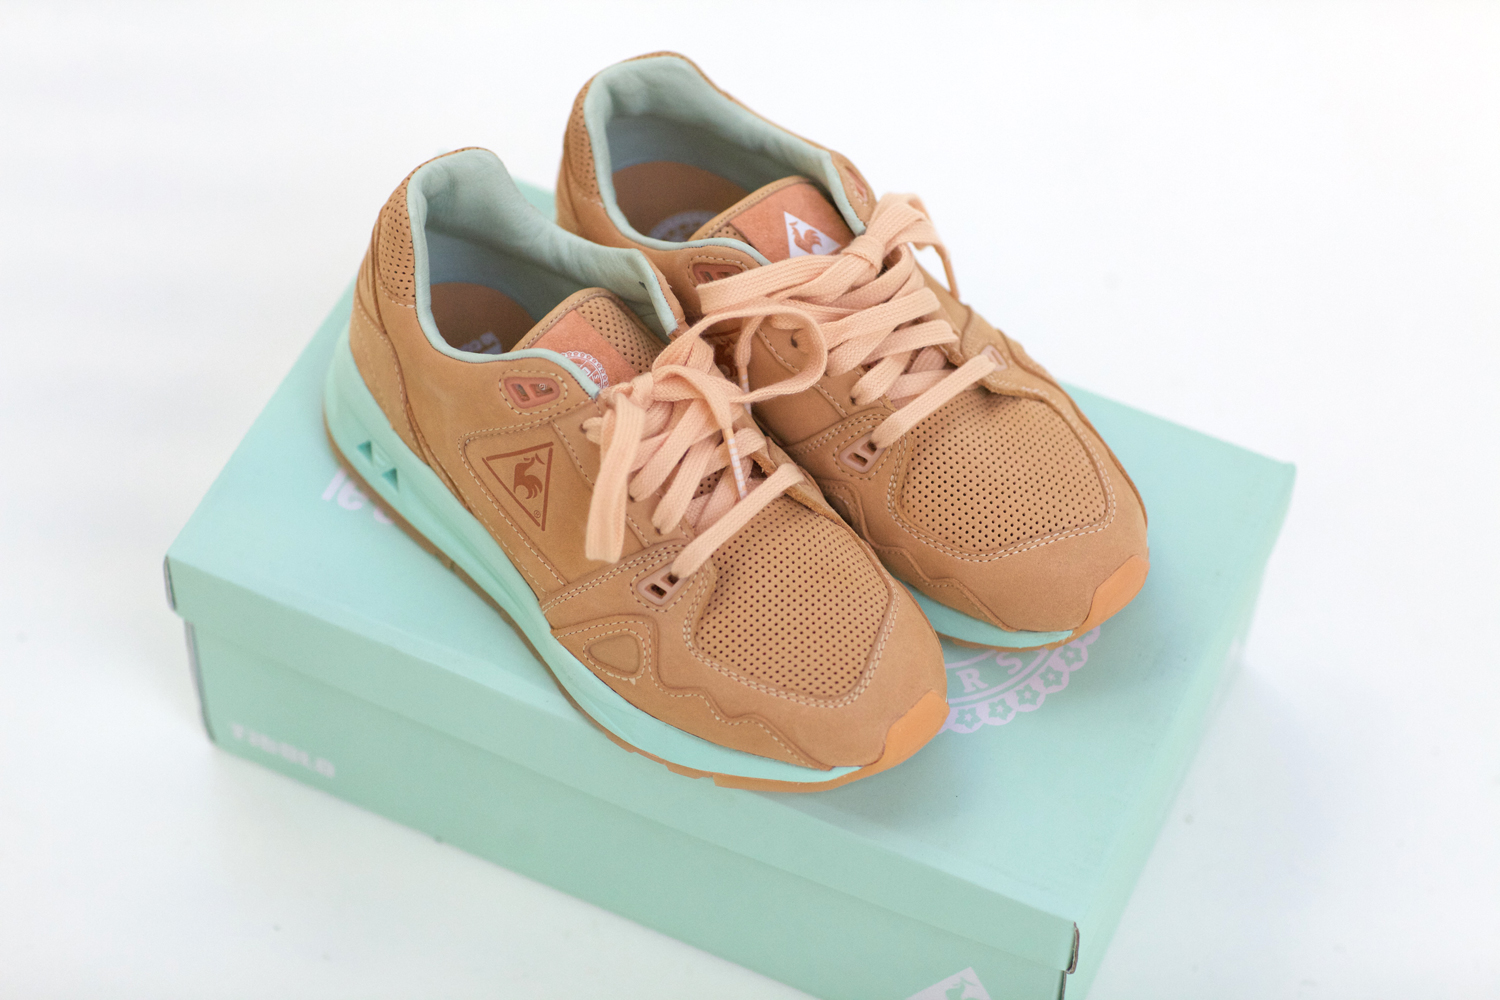 17f38797499e64 Take a look at the latest collab between Titolo and Le coq sportif. Made  with soft leather and a cool mint sole. This pair comes in a mint shoebox  with 3 ...